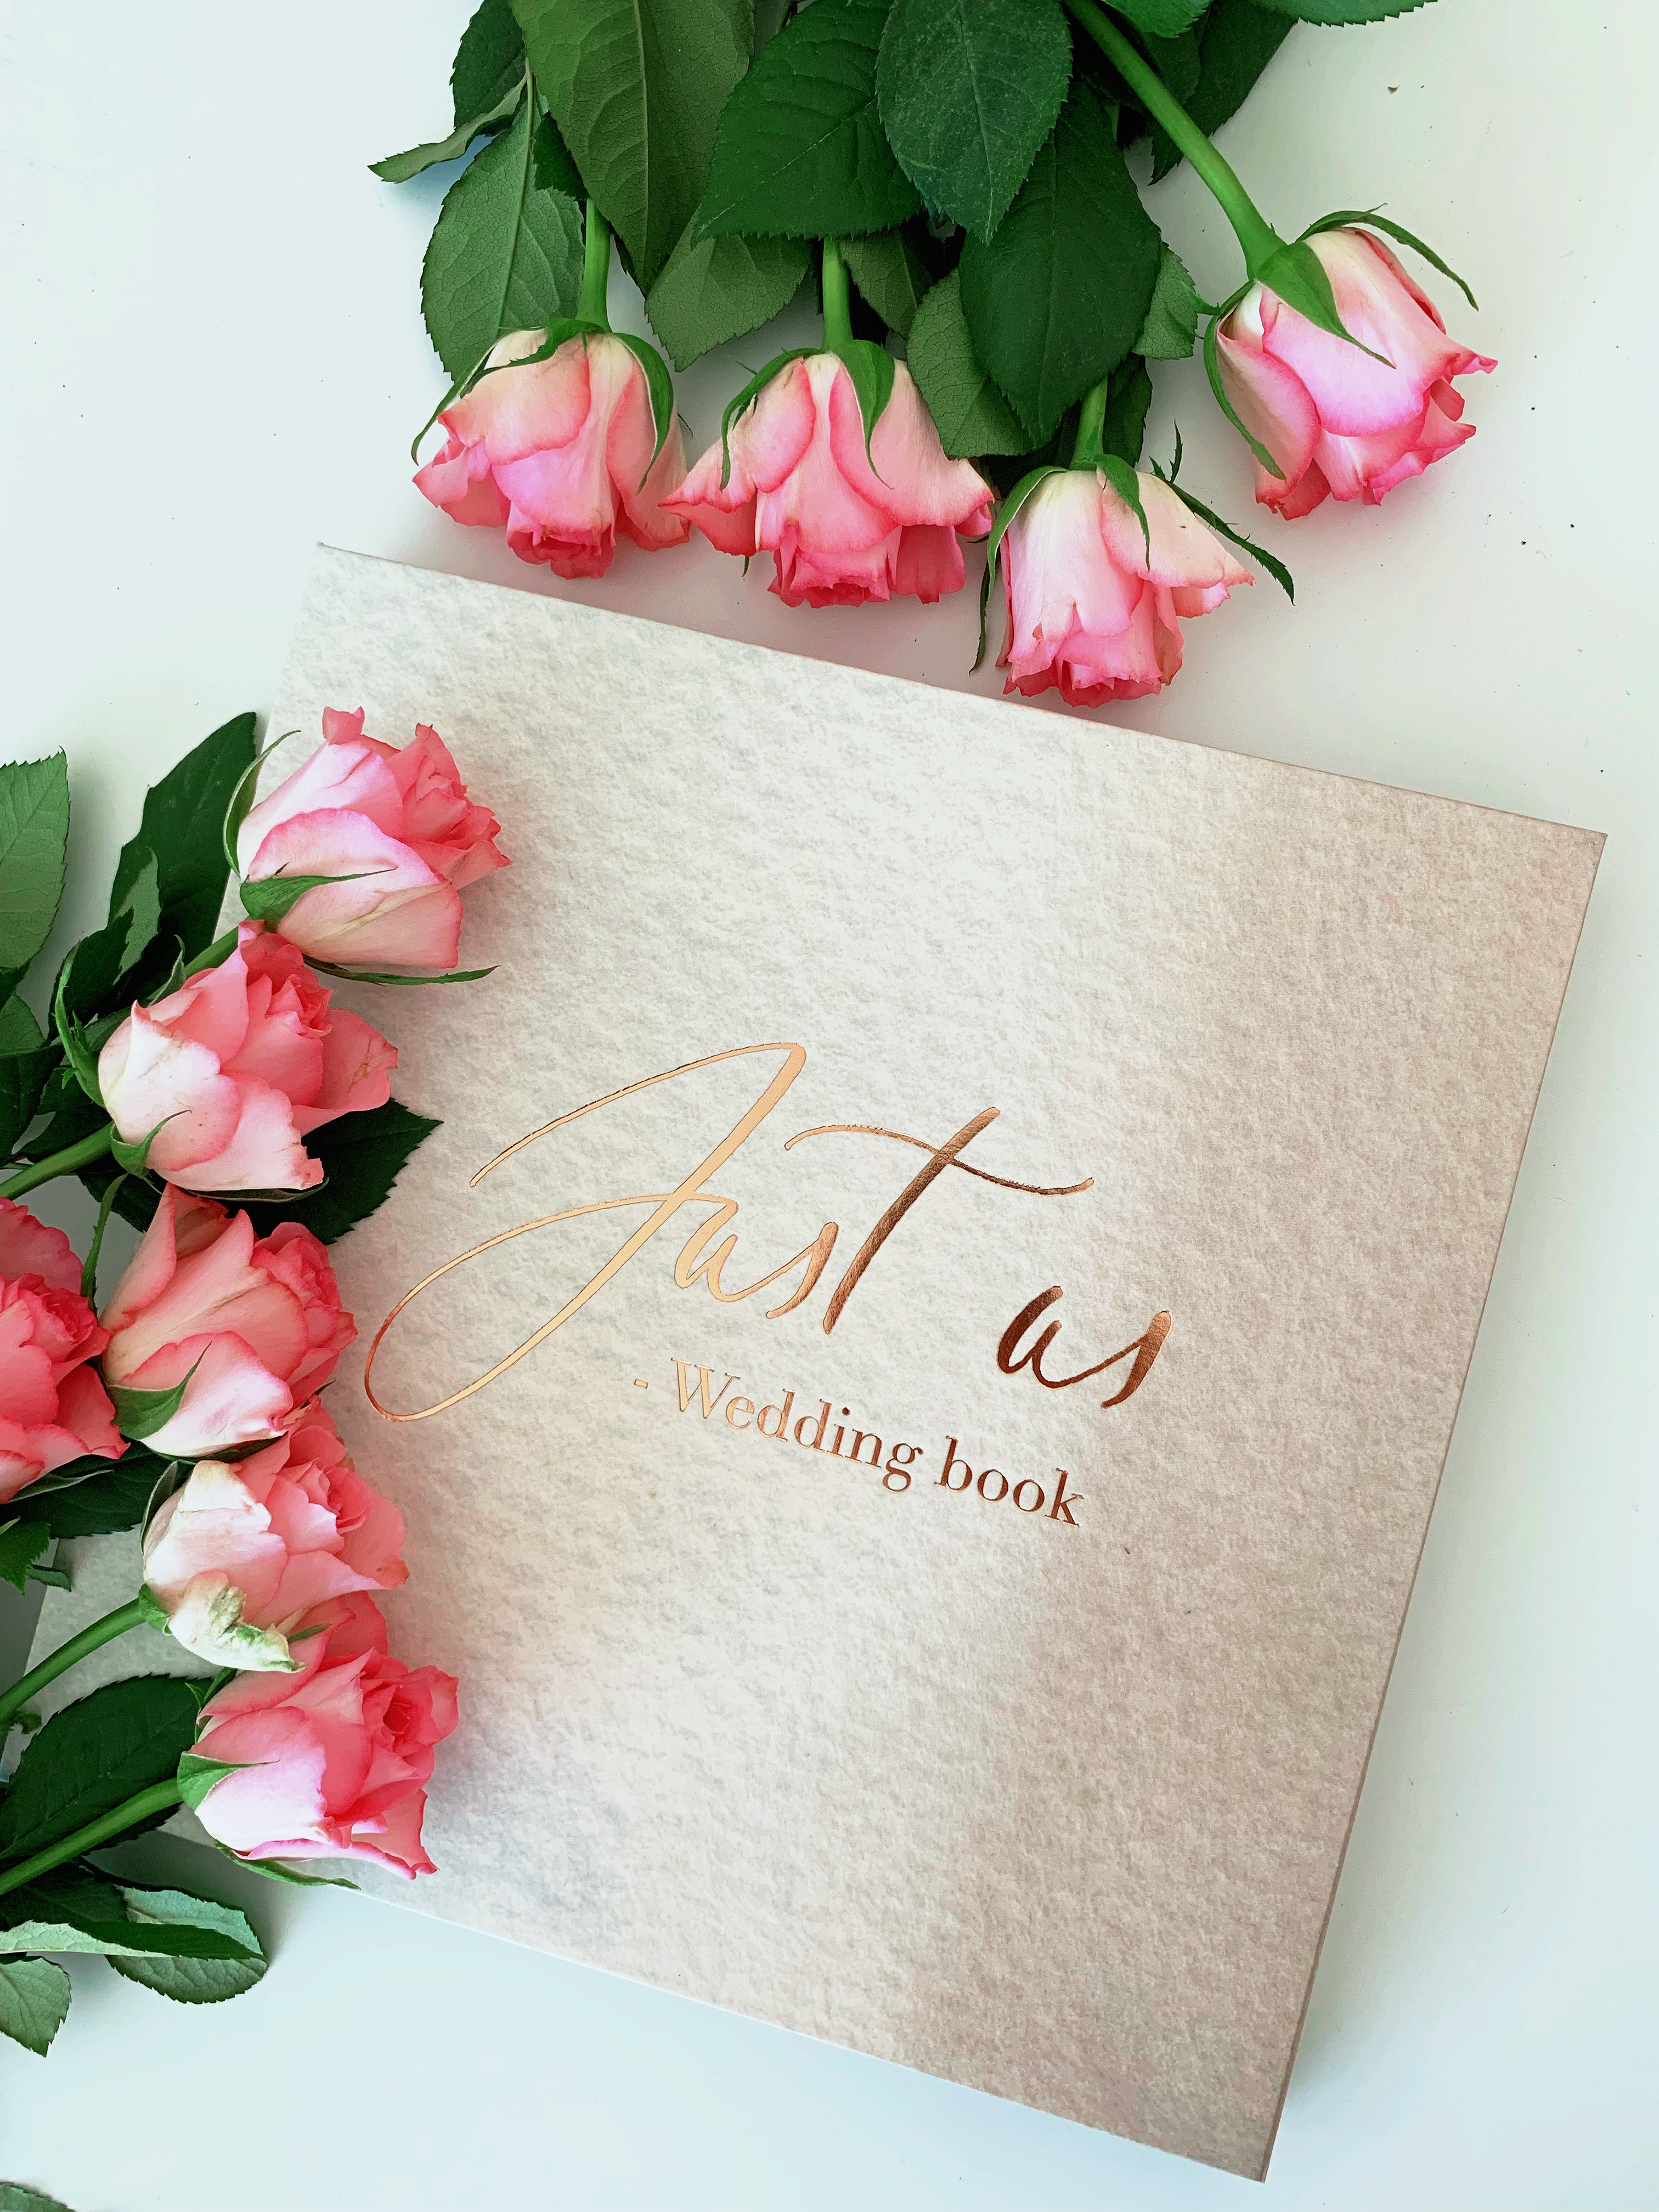 Just us – wedding book